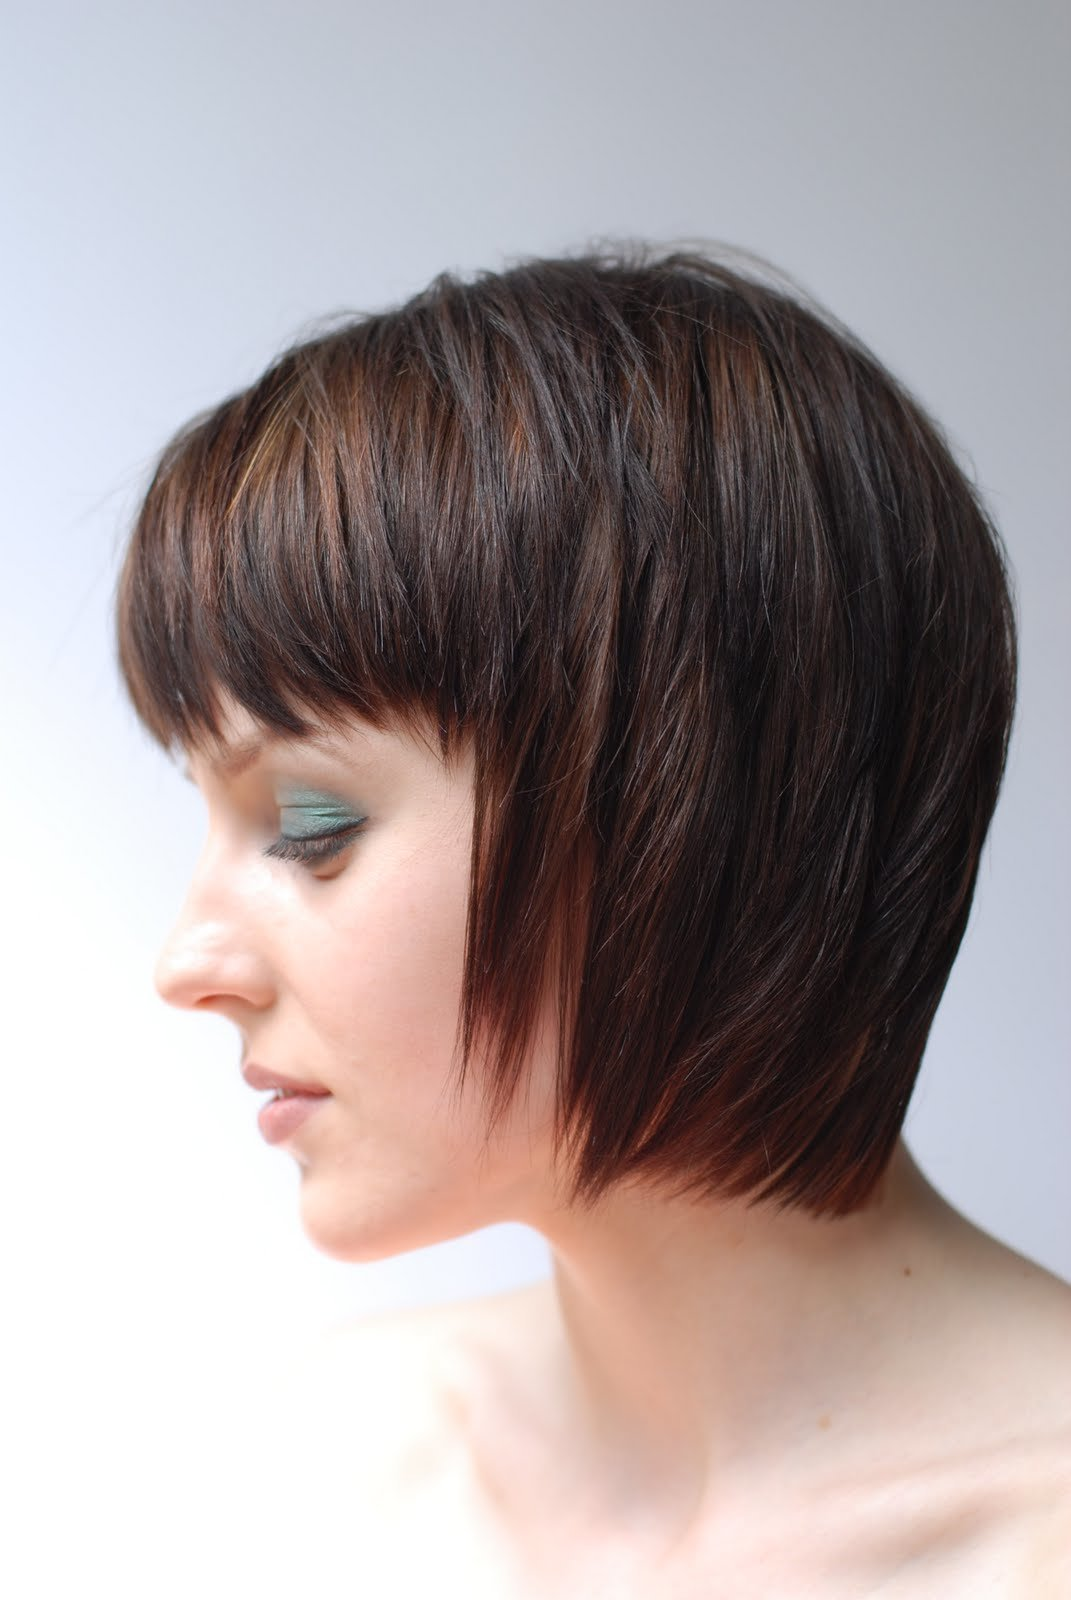 New 2011 Hairstyles Pictures Modern Bob Hairstyle Ideas Ideas With Pictures